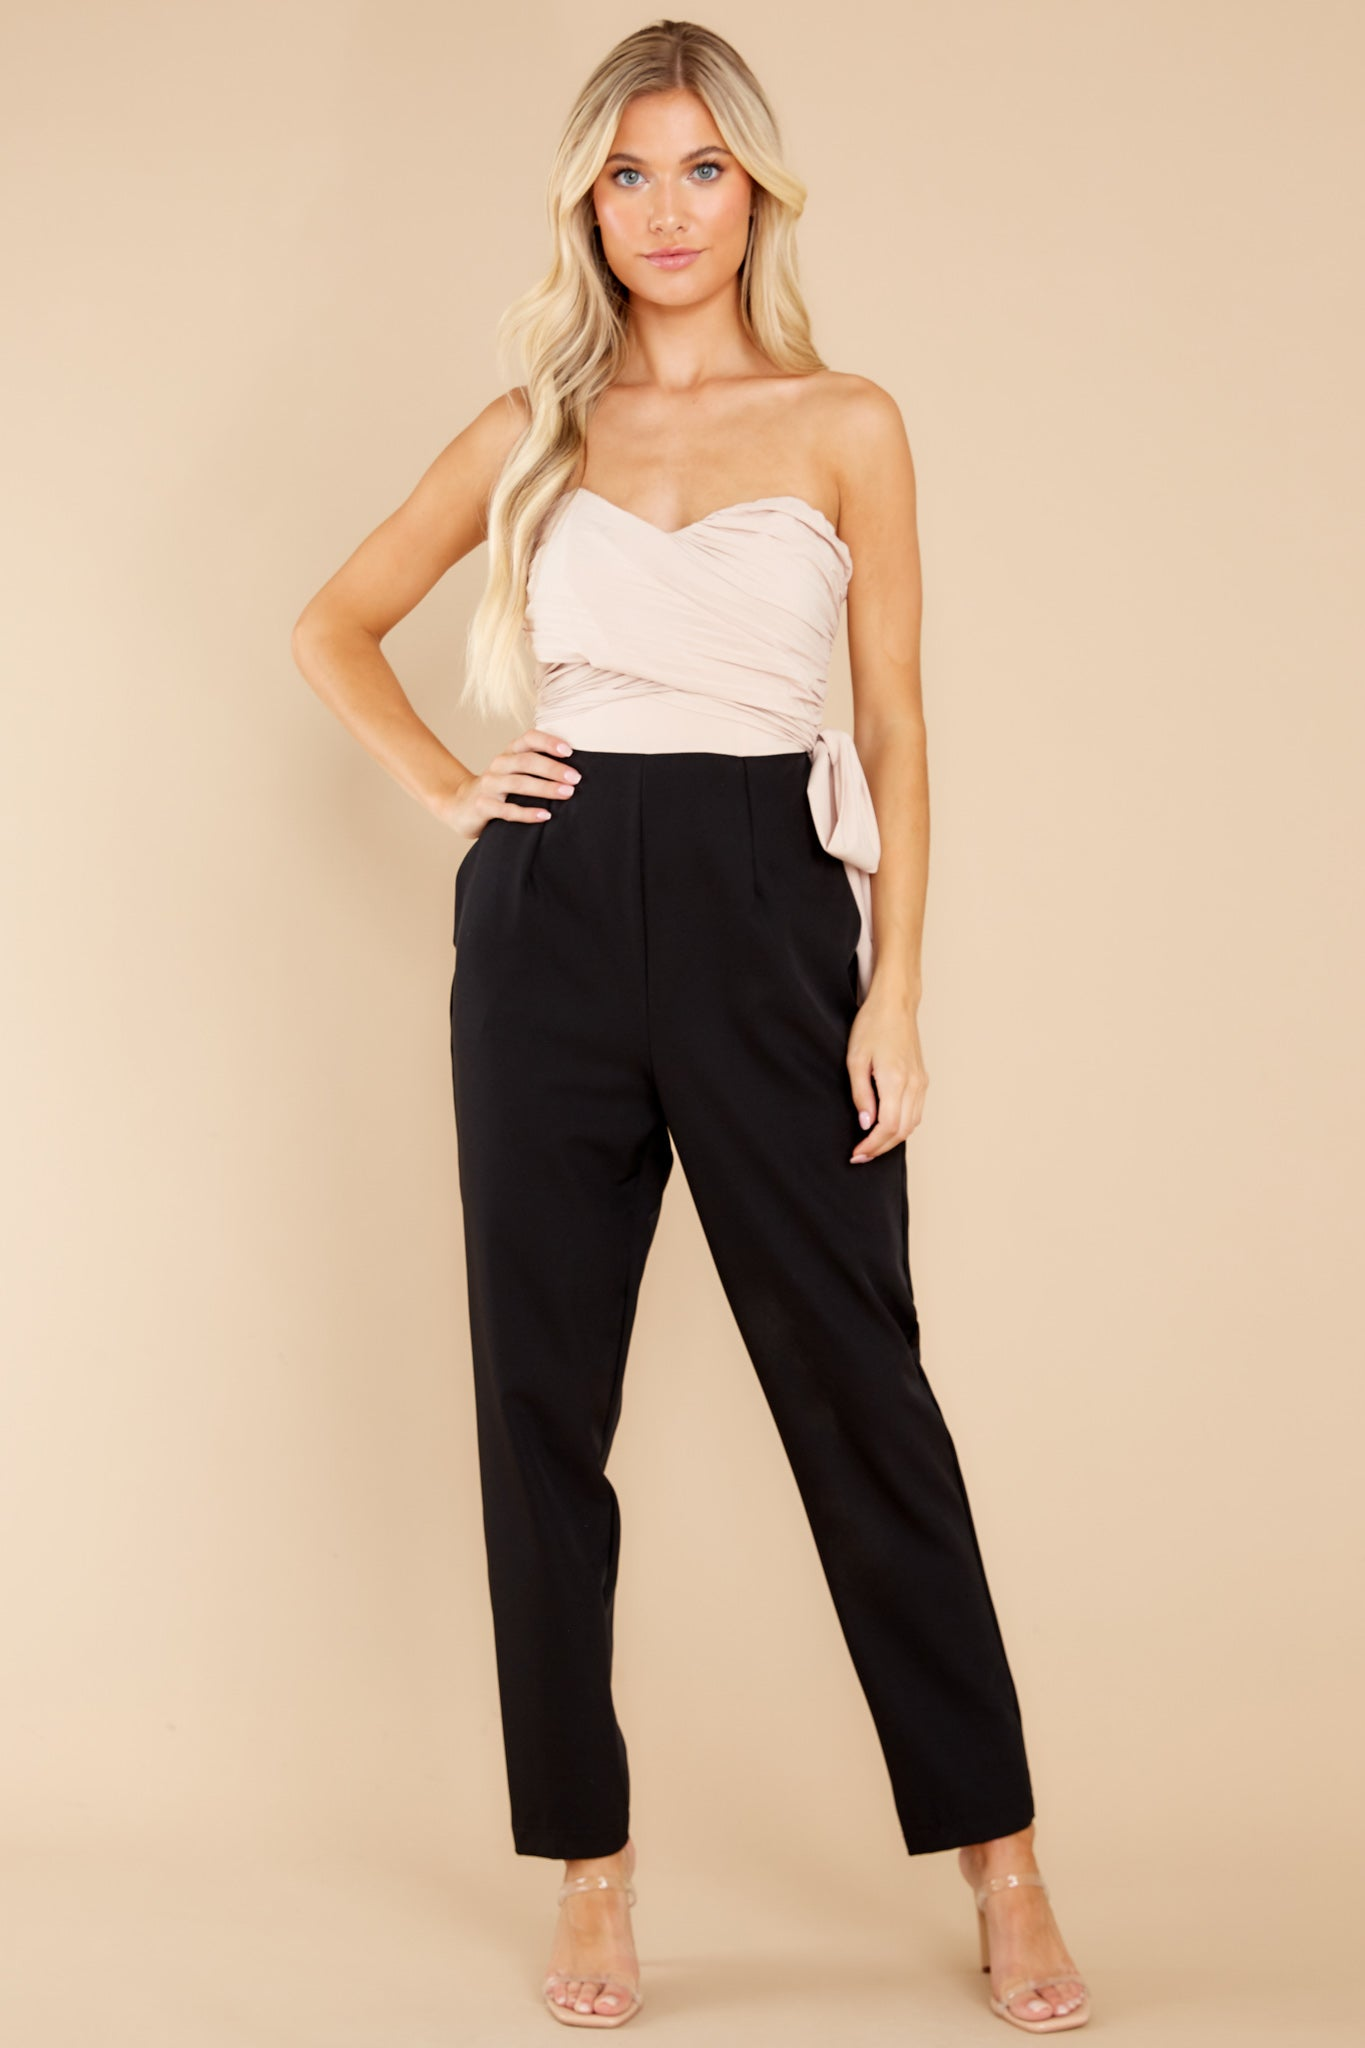 1980s Clothing, Fashion | 80s Style Clothes Under Our Star Black And Beige Jumpsuit $54.00 AT vintagedancer.com